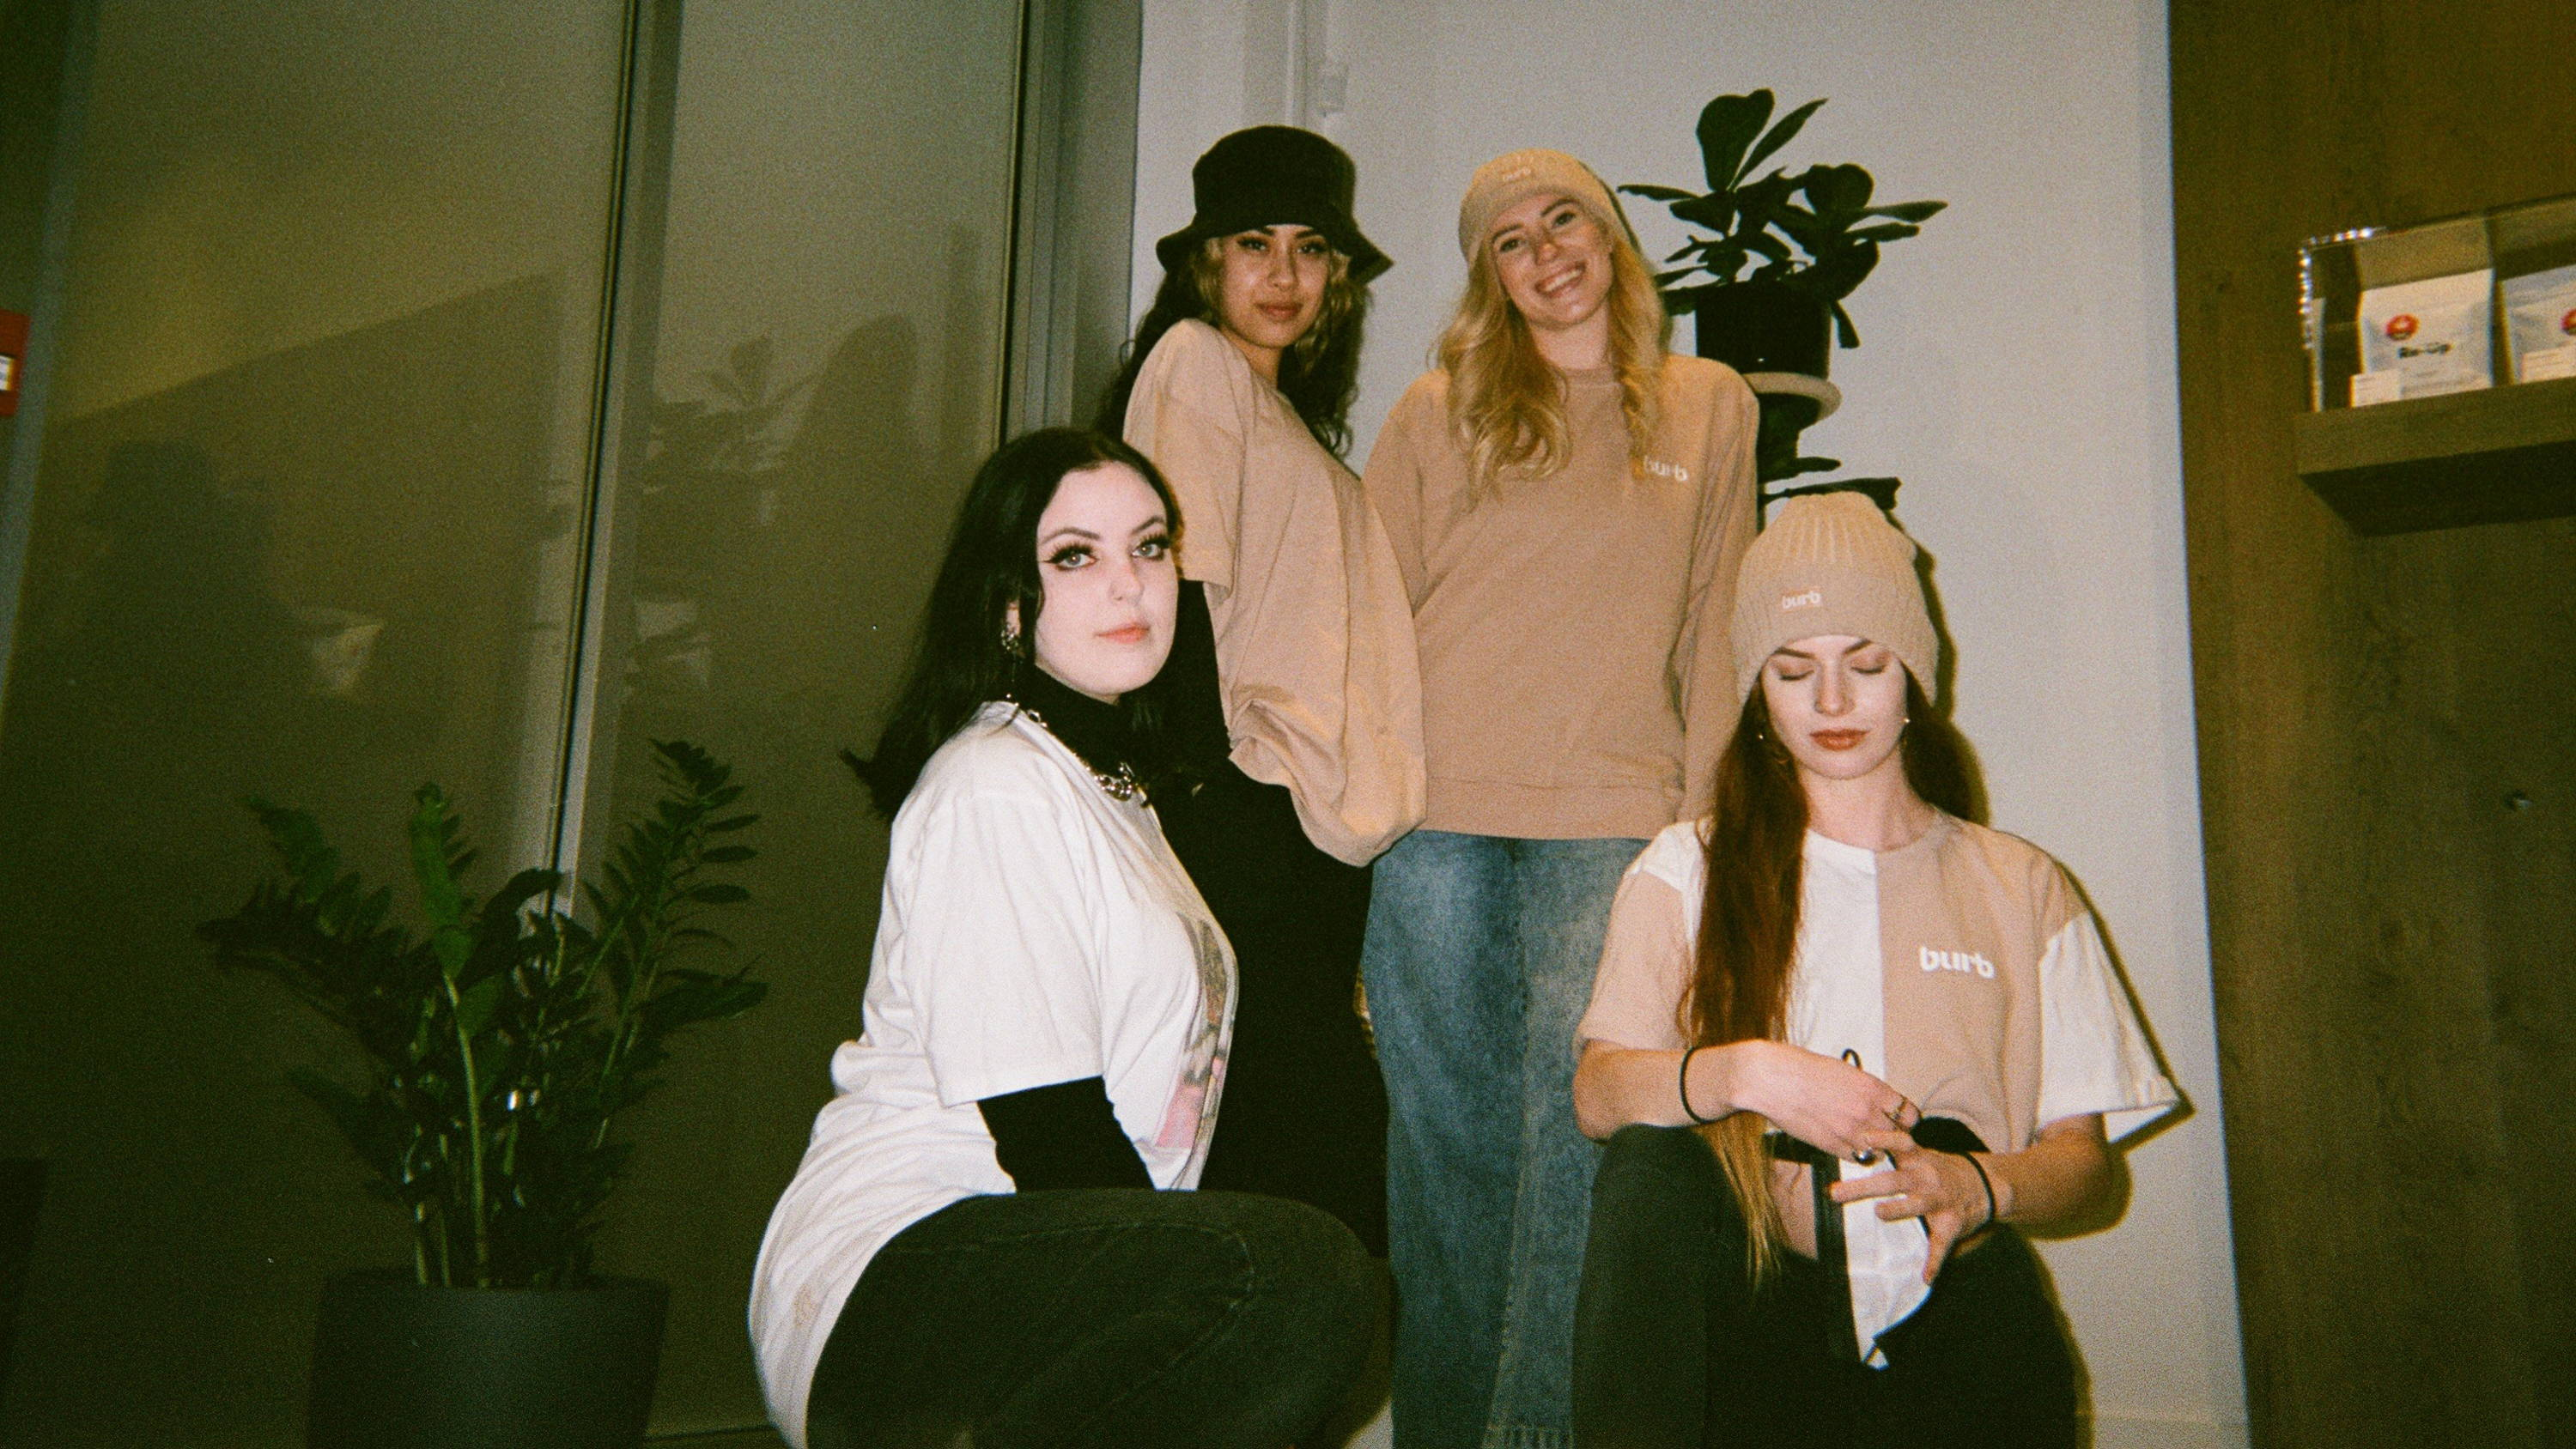 A photo of four women from Burb cannabis with the store behind them.